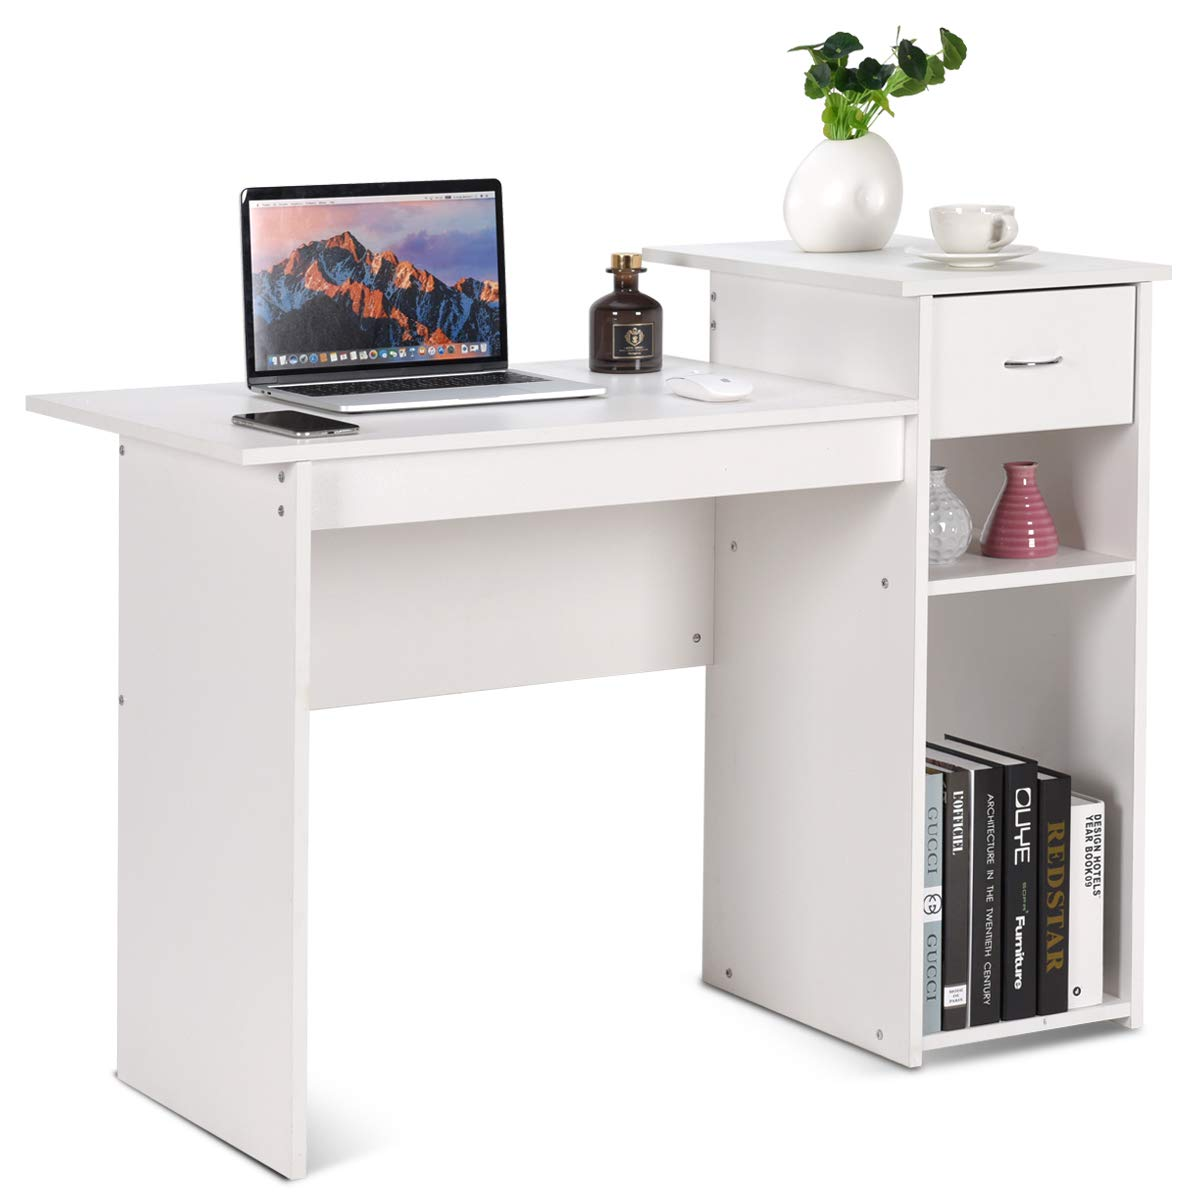 Tangkula Computer Desk, Home Office Wooden PC Laptop Desk, Modern Simple Style Wood Study Workstation, Writing Table with Storage Drawer & Shelves, Wooden Furniture (White) by Tangkula